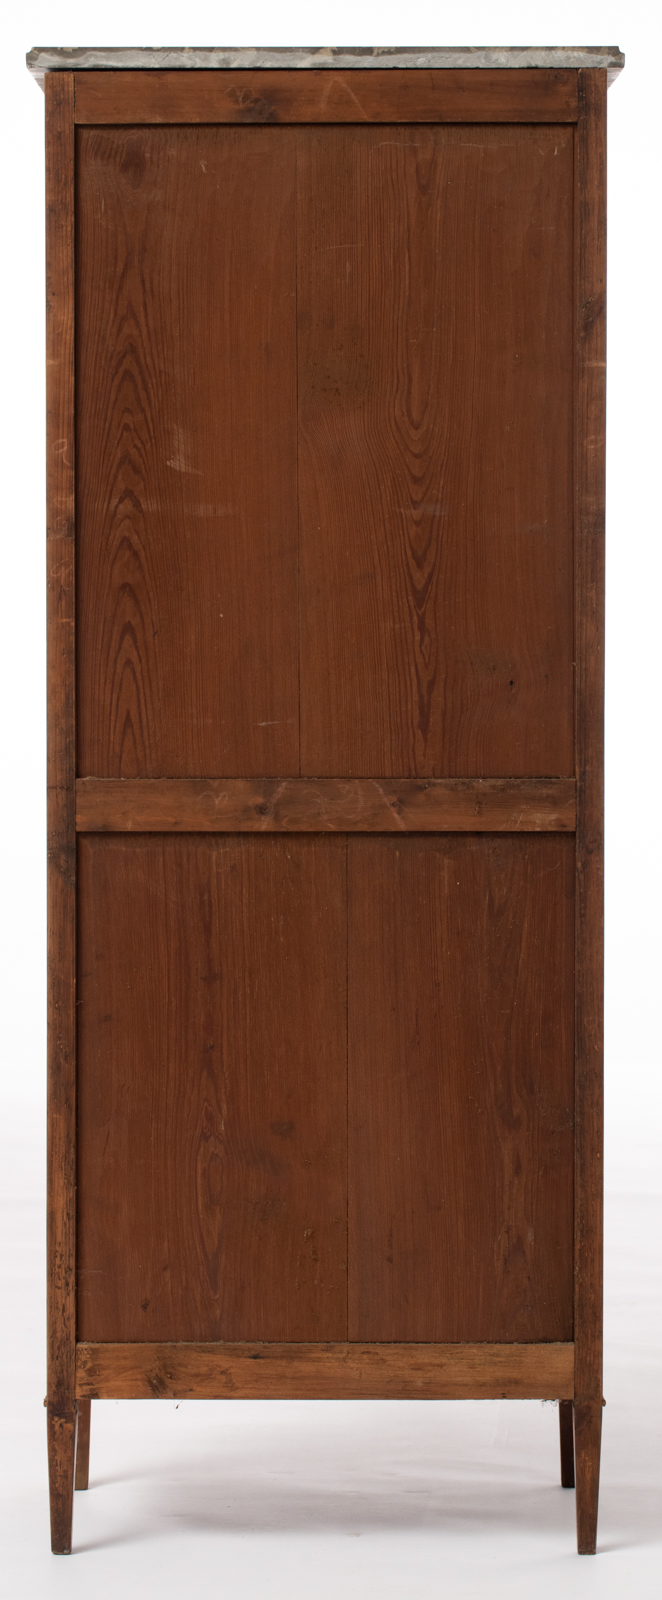 Lot 1072 - A slender mahogany veneered fall front desk with Neoclassical gilt bronze escutcheons and a gris Sai